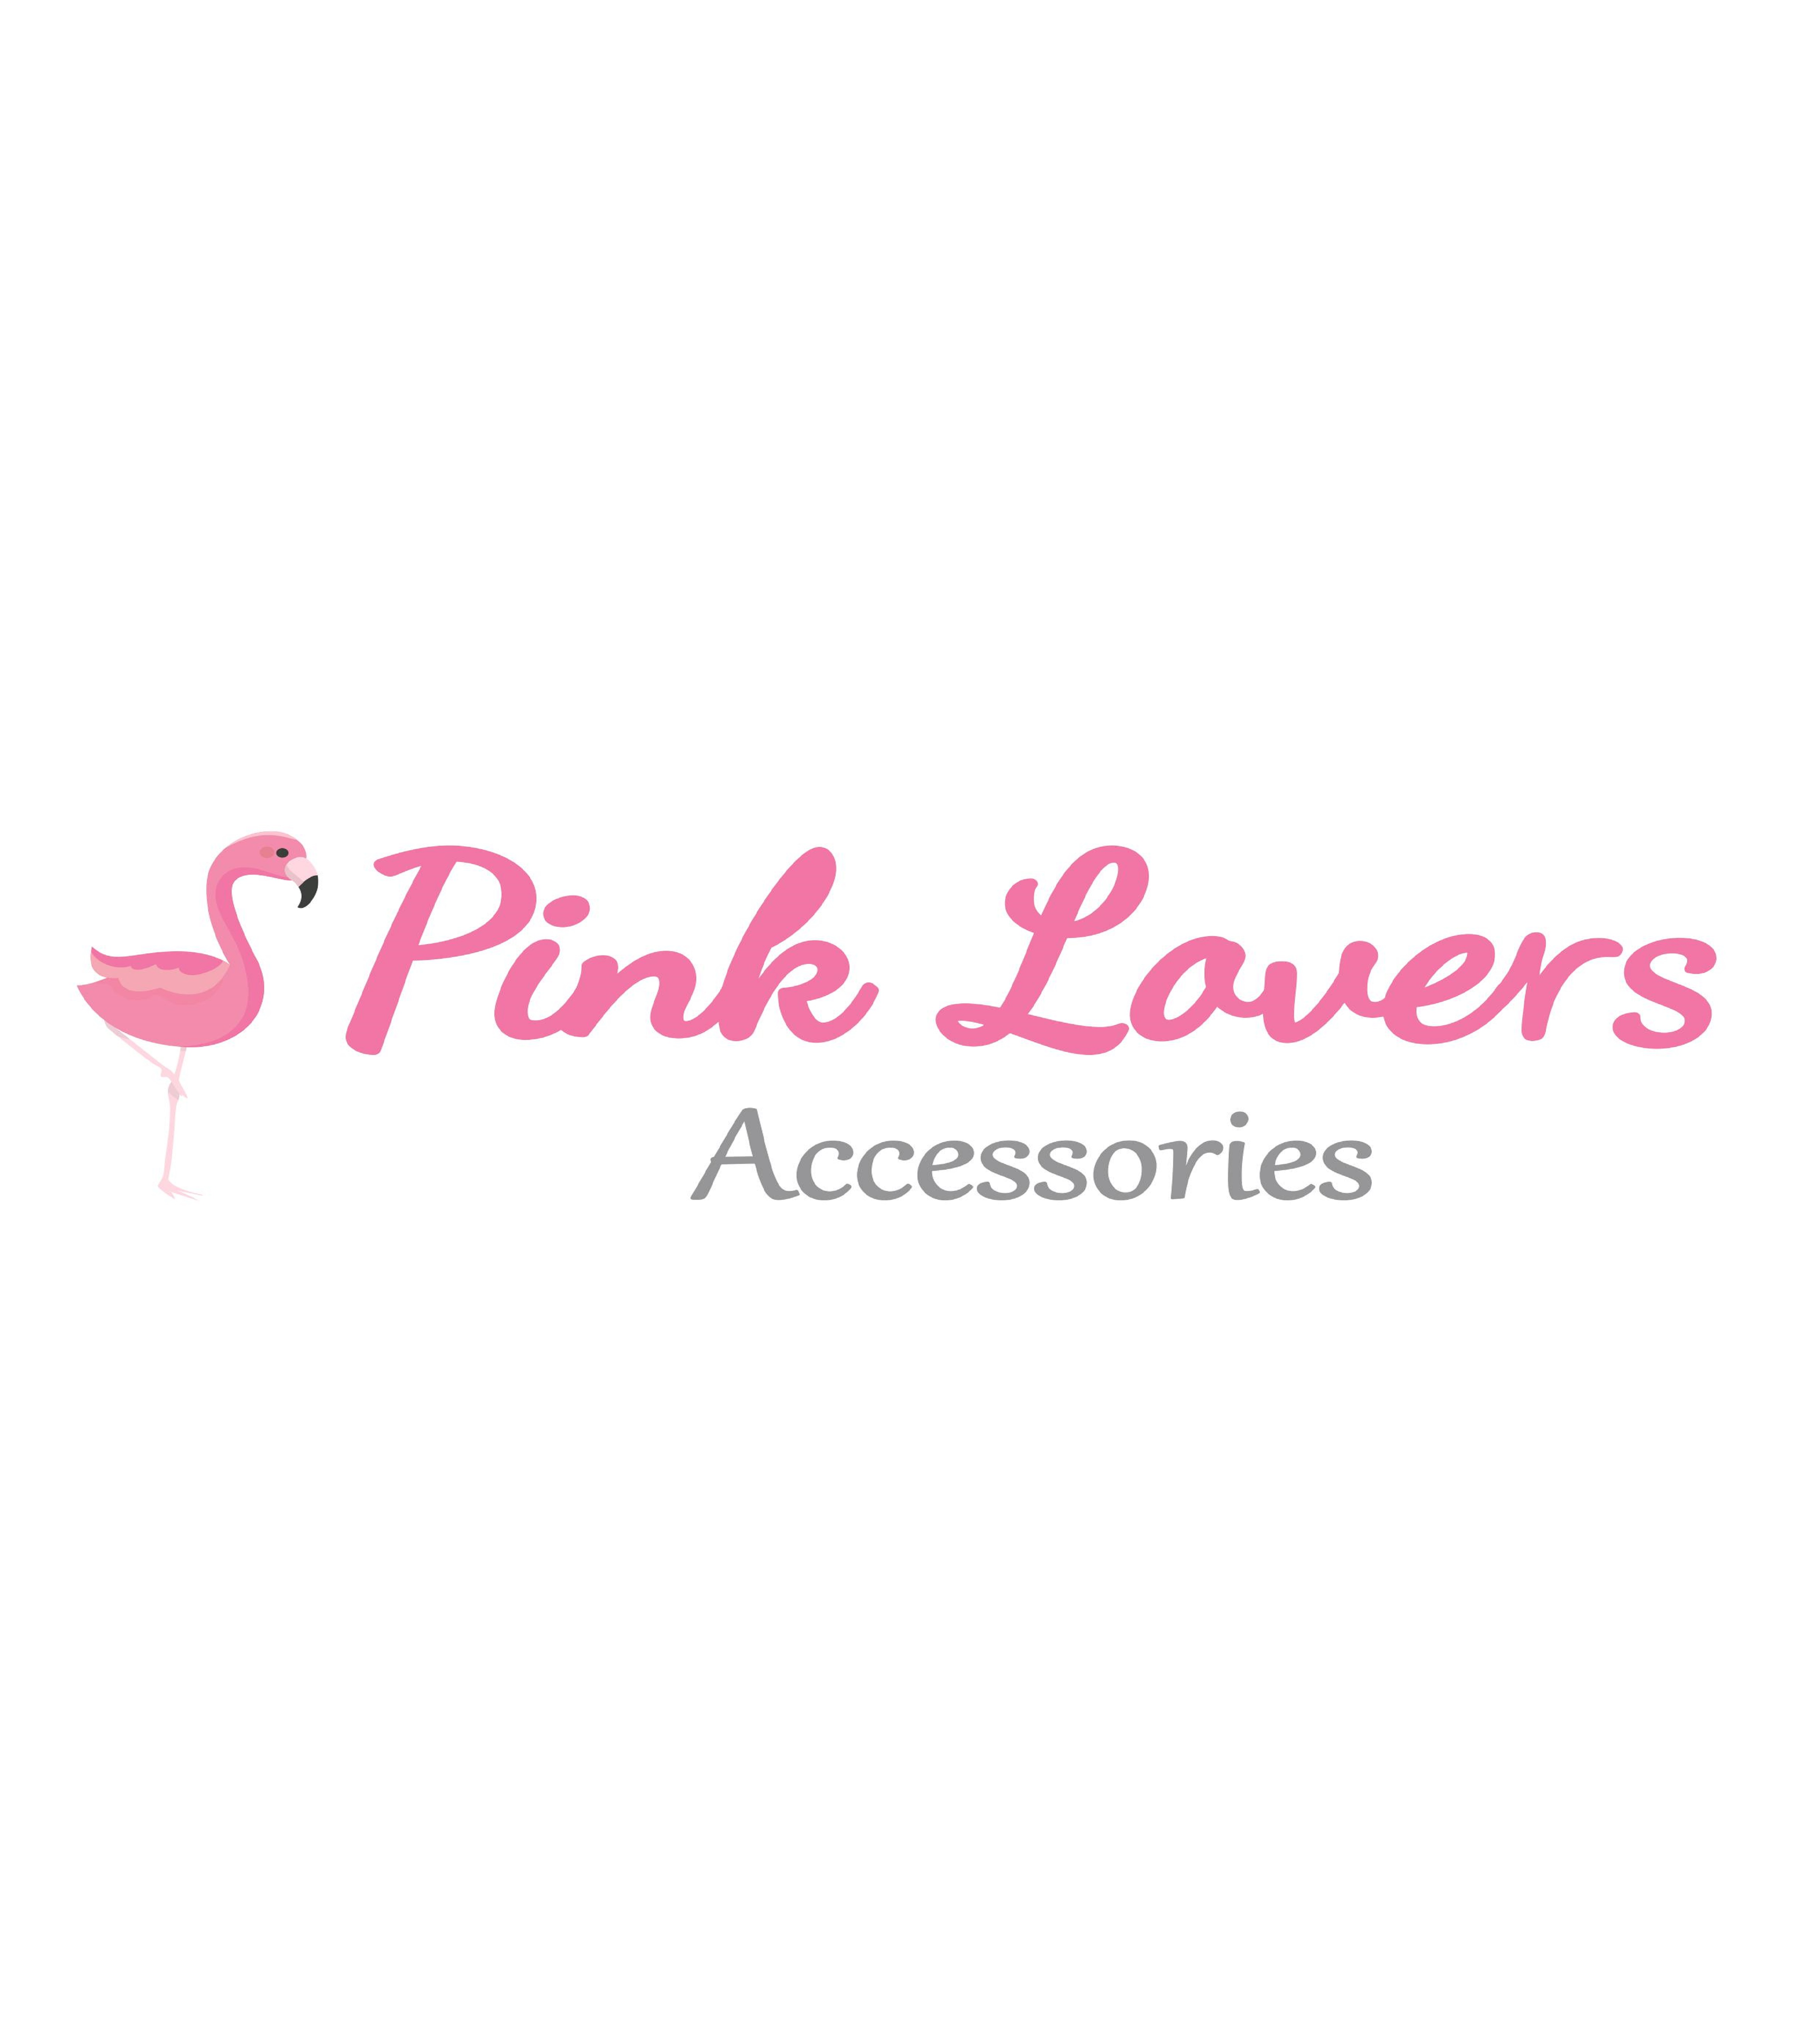 PİNK LOVERS ACCESSORIES